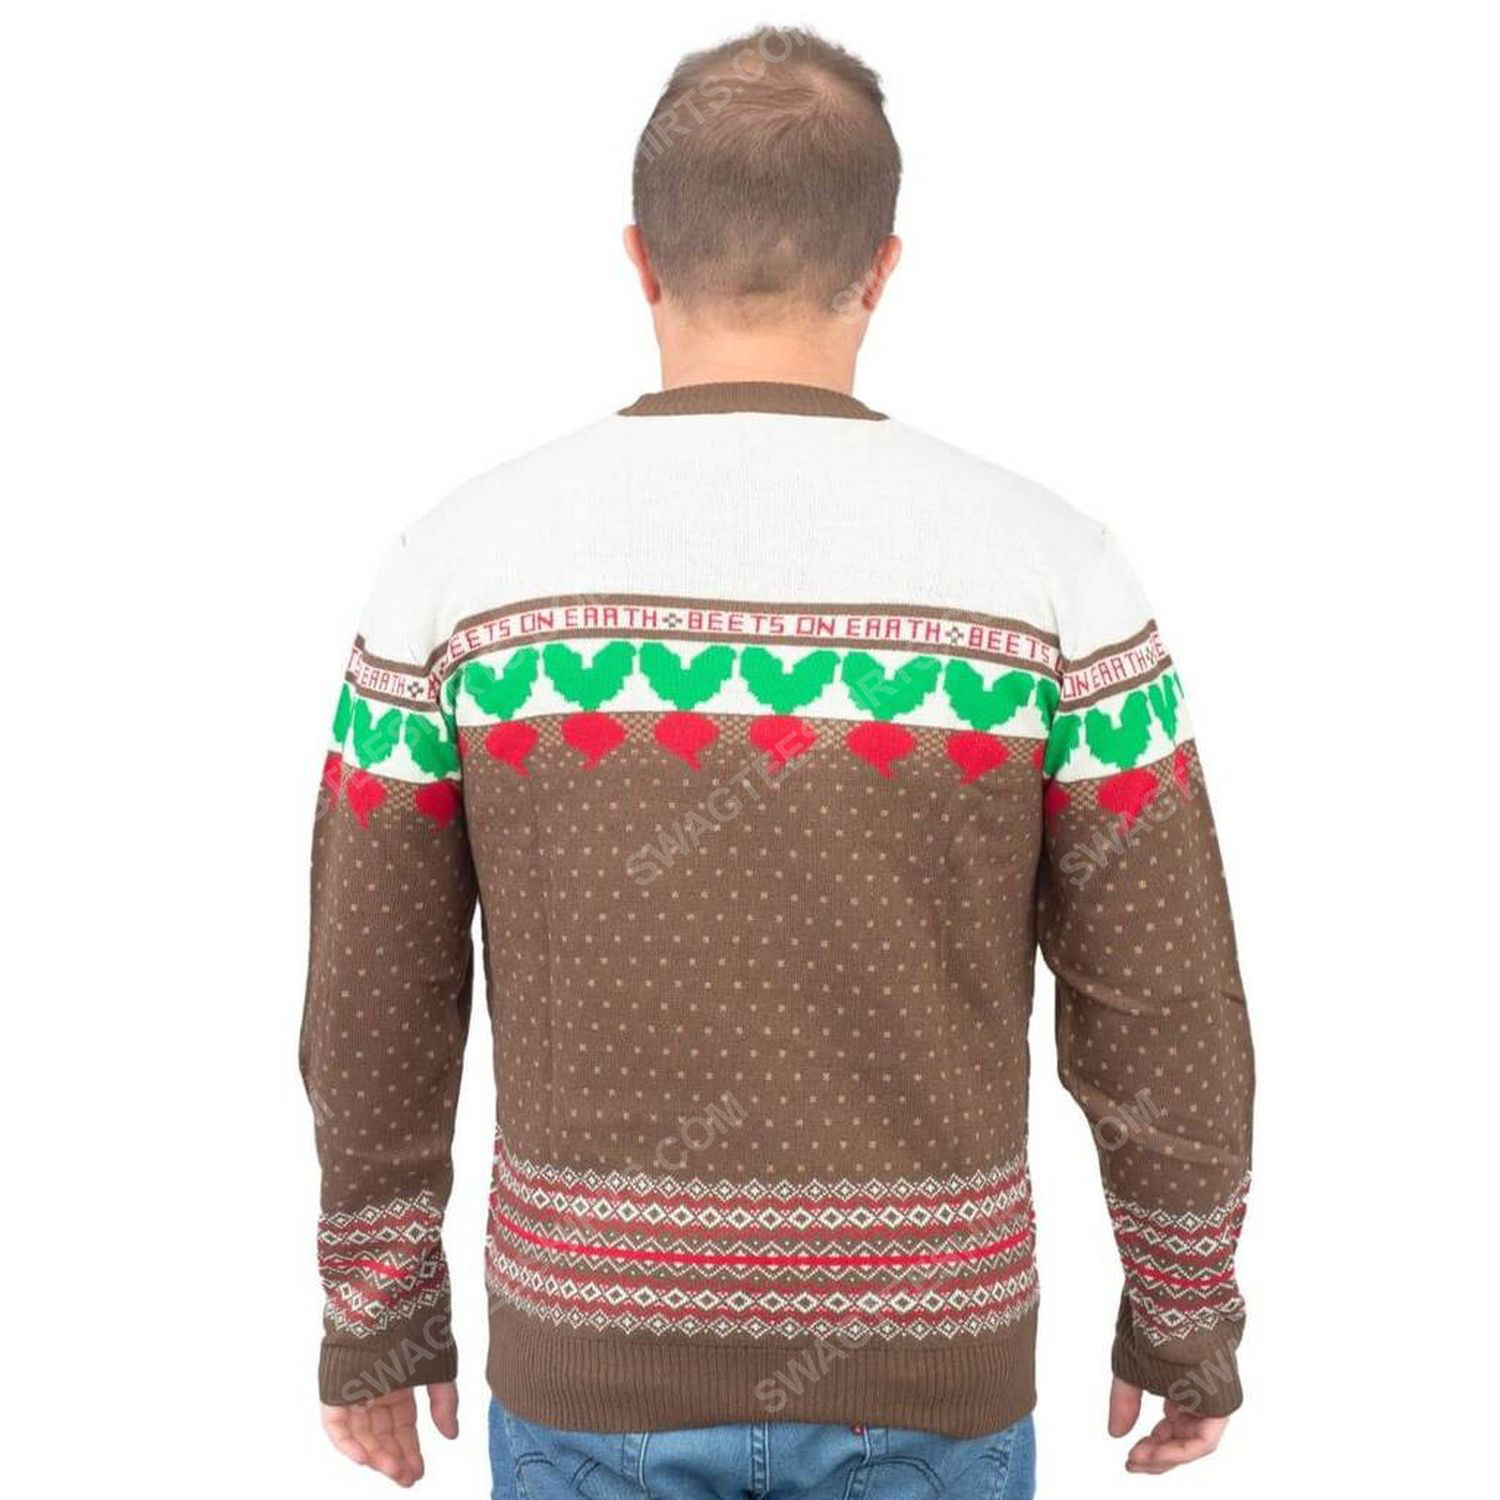 The office dwight schrute farms beets full print ugly christmas sweater 3